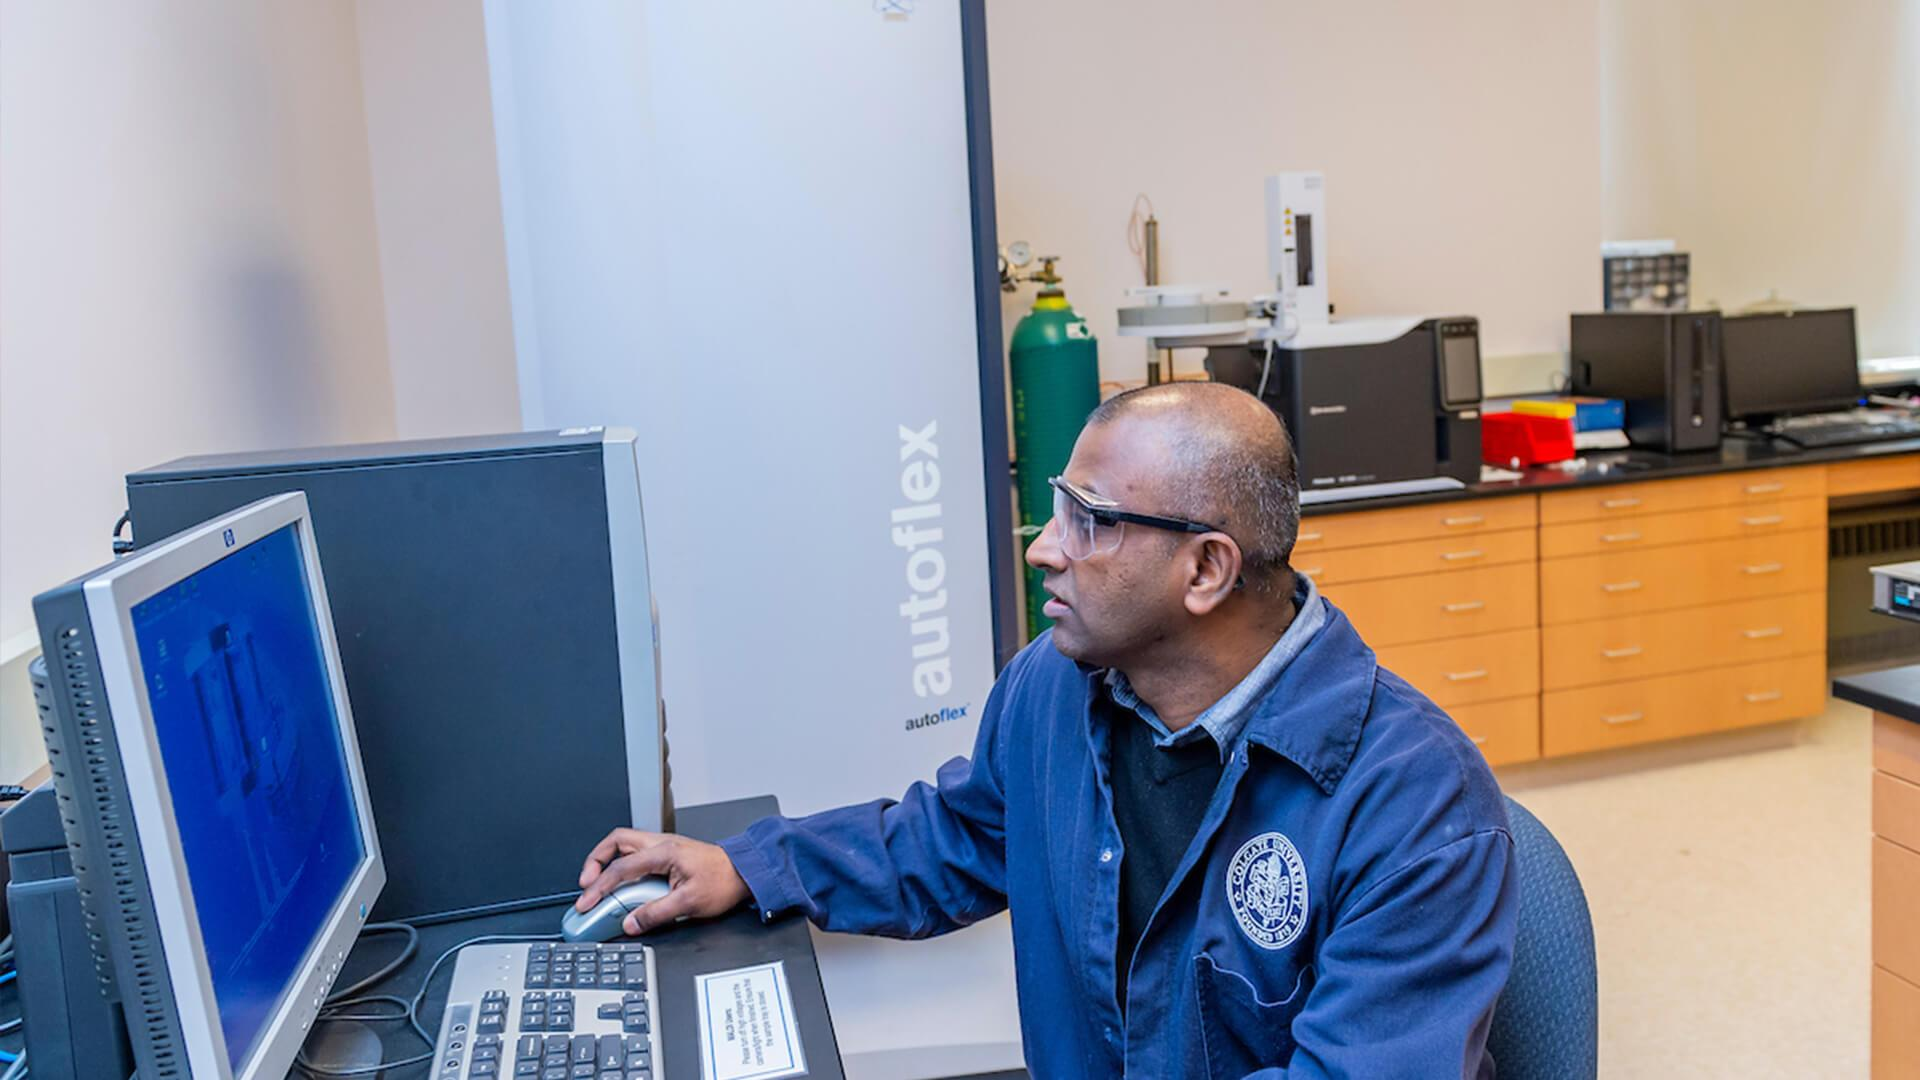 Professor Mahendran Adaickapillai works with the Bruker Daltonics Autoflex MALDI-TOF mass spectrometer